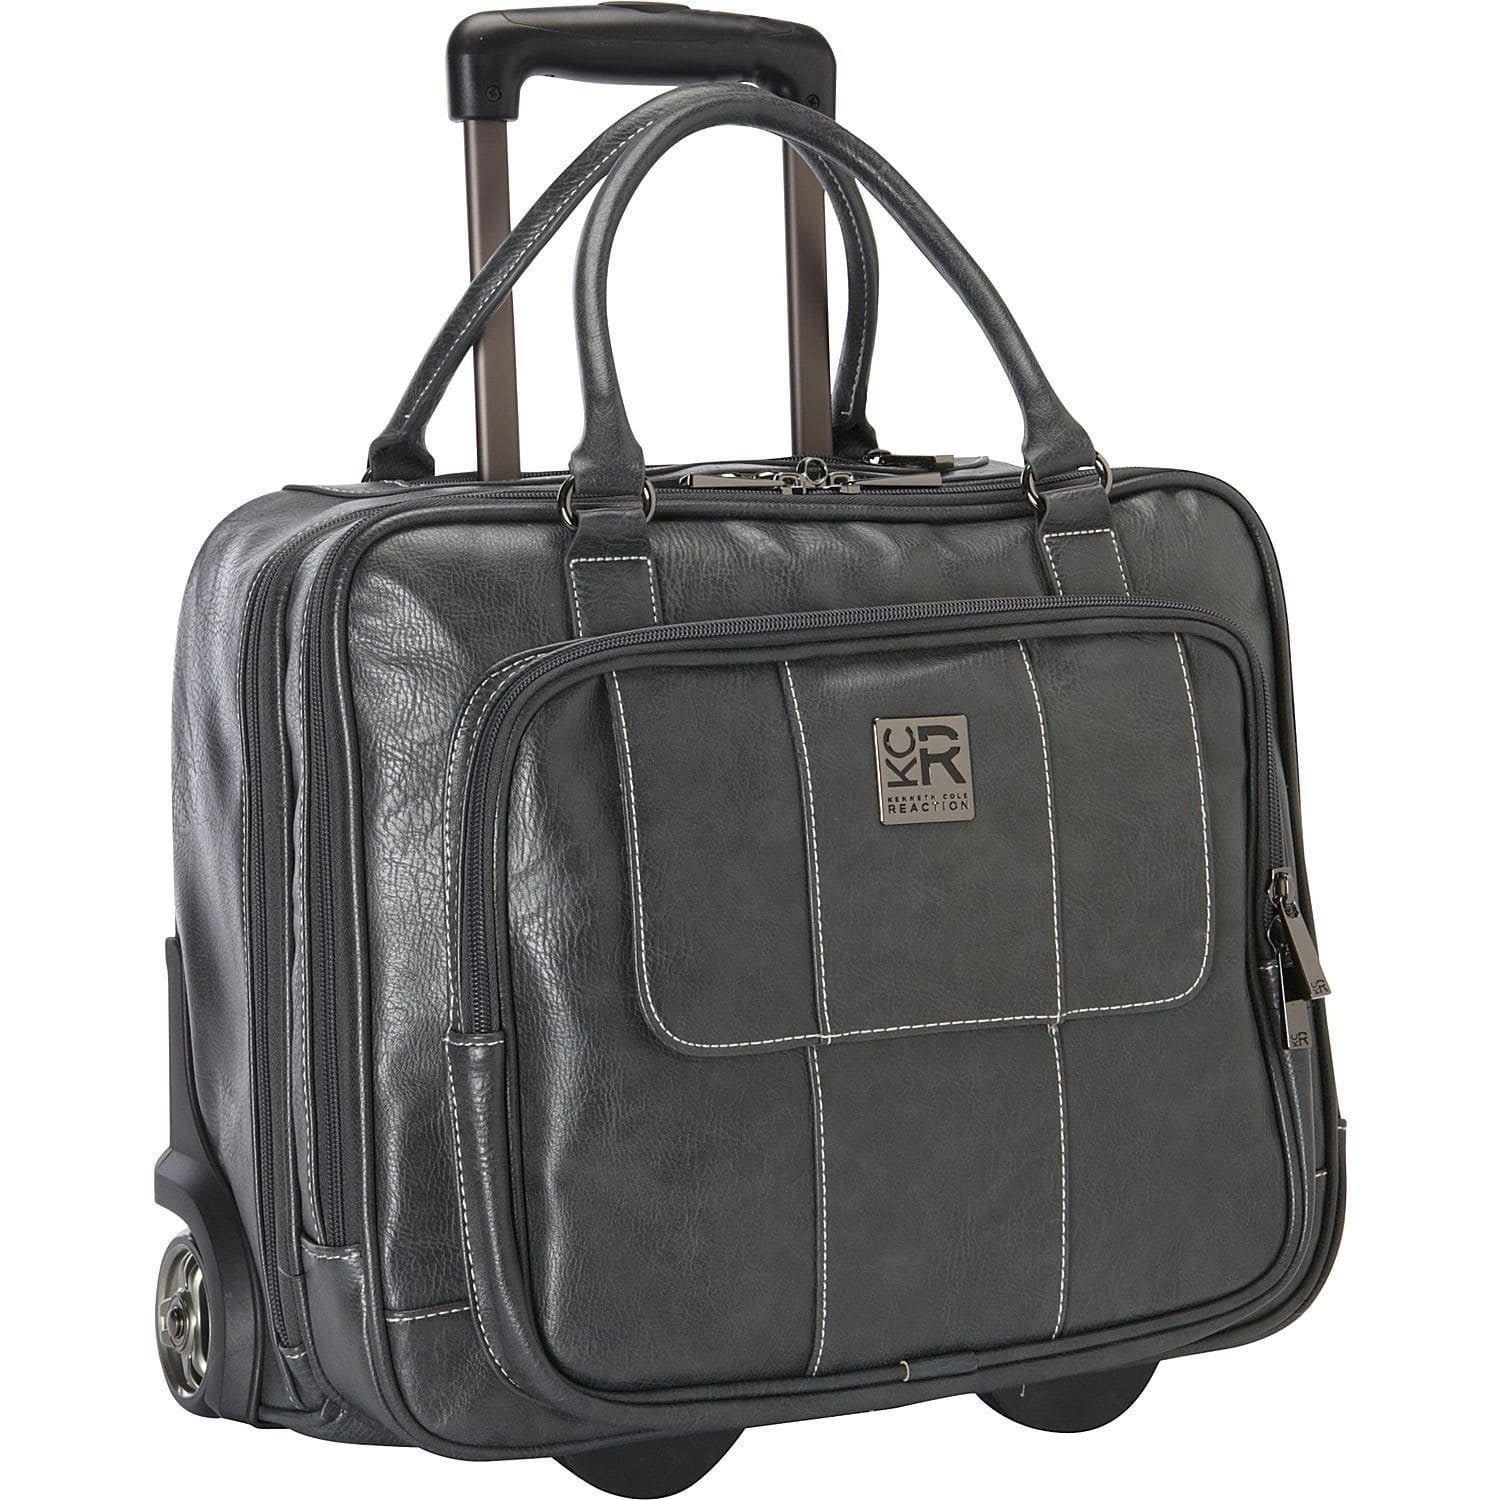 40a57c46e89 Shop Kenneth Cole Reaction Pebbled Faux Leather Dual Compartment 2-wheeled  16-inch Laptop Carry-on Business Overnighter - Free Shipping Today -  Overstock - ...